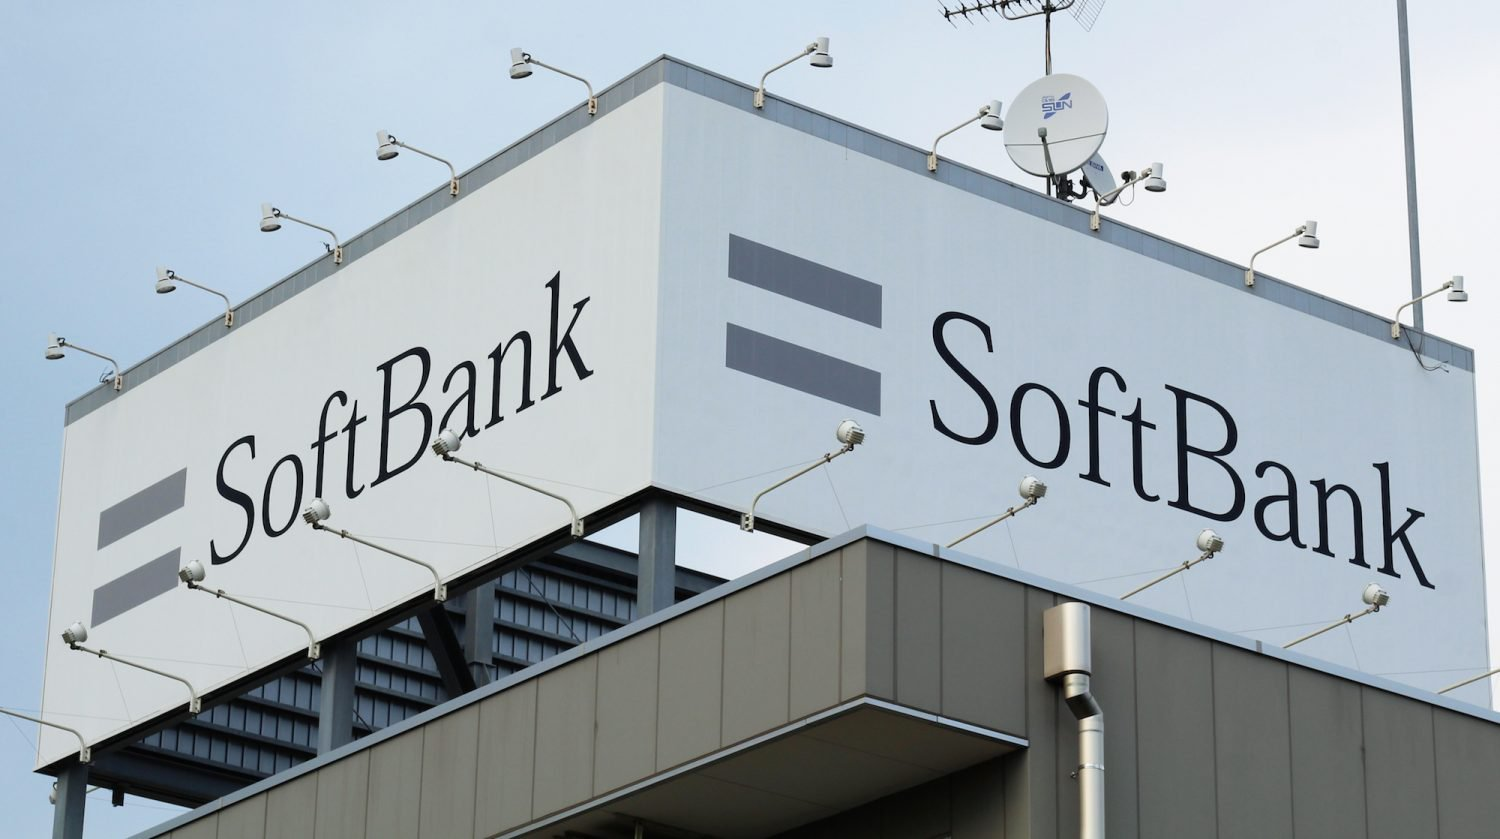 Softbank builds blockchain platform enabling global payments on mobiles